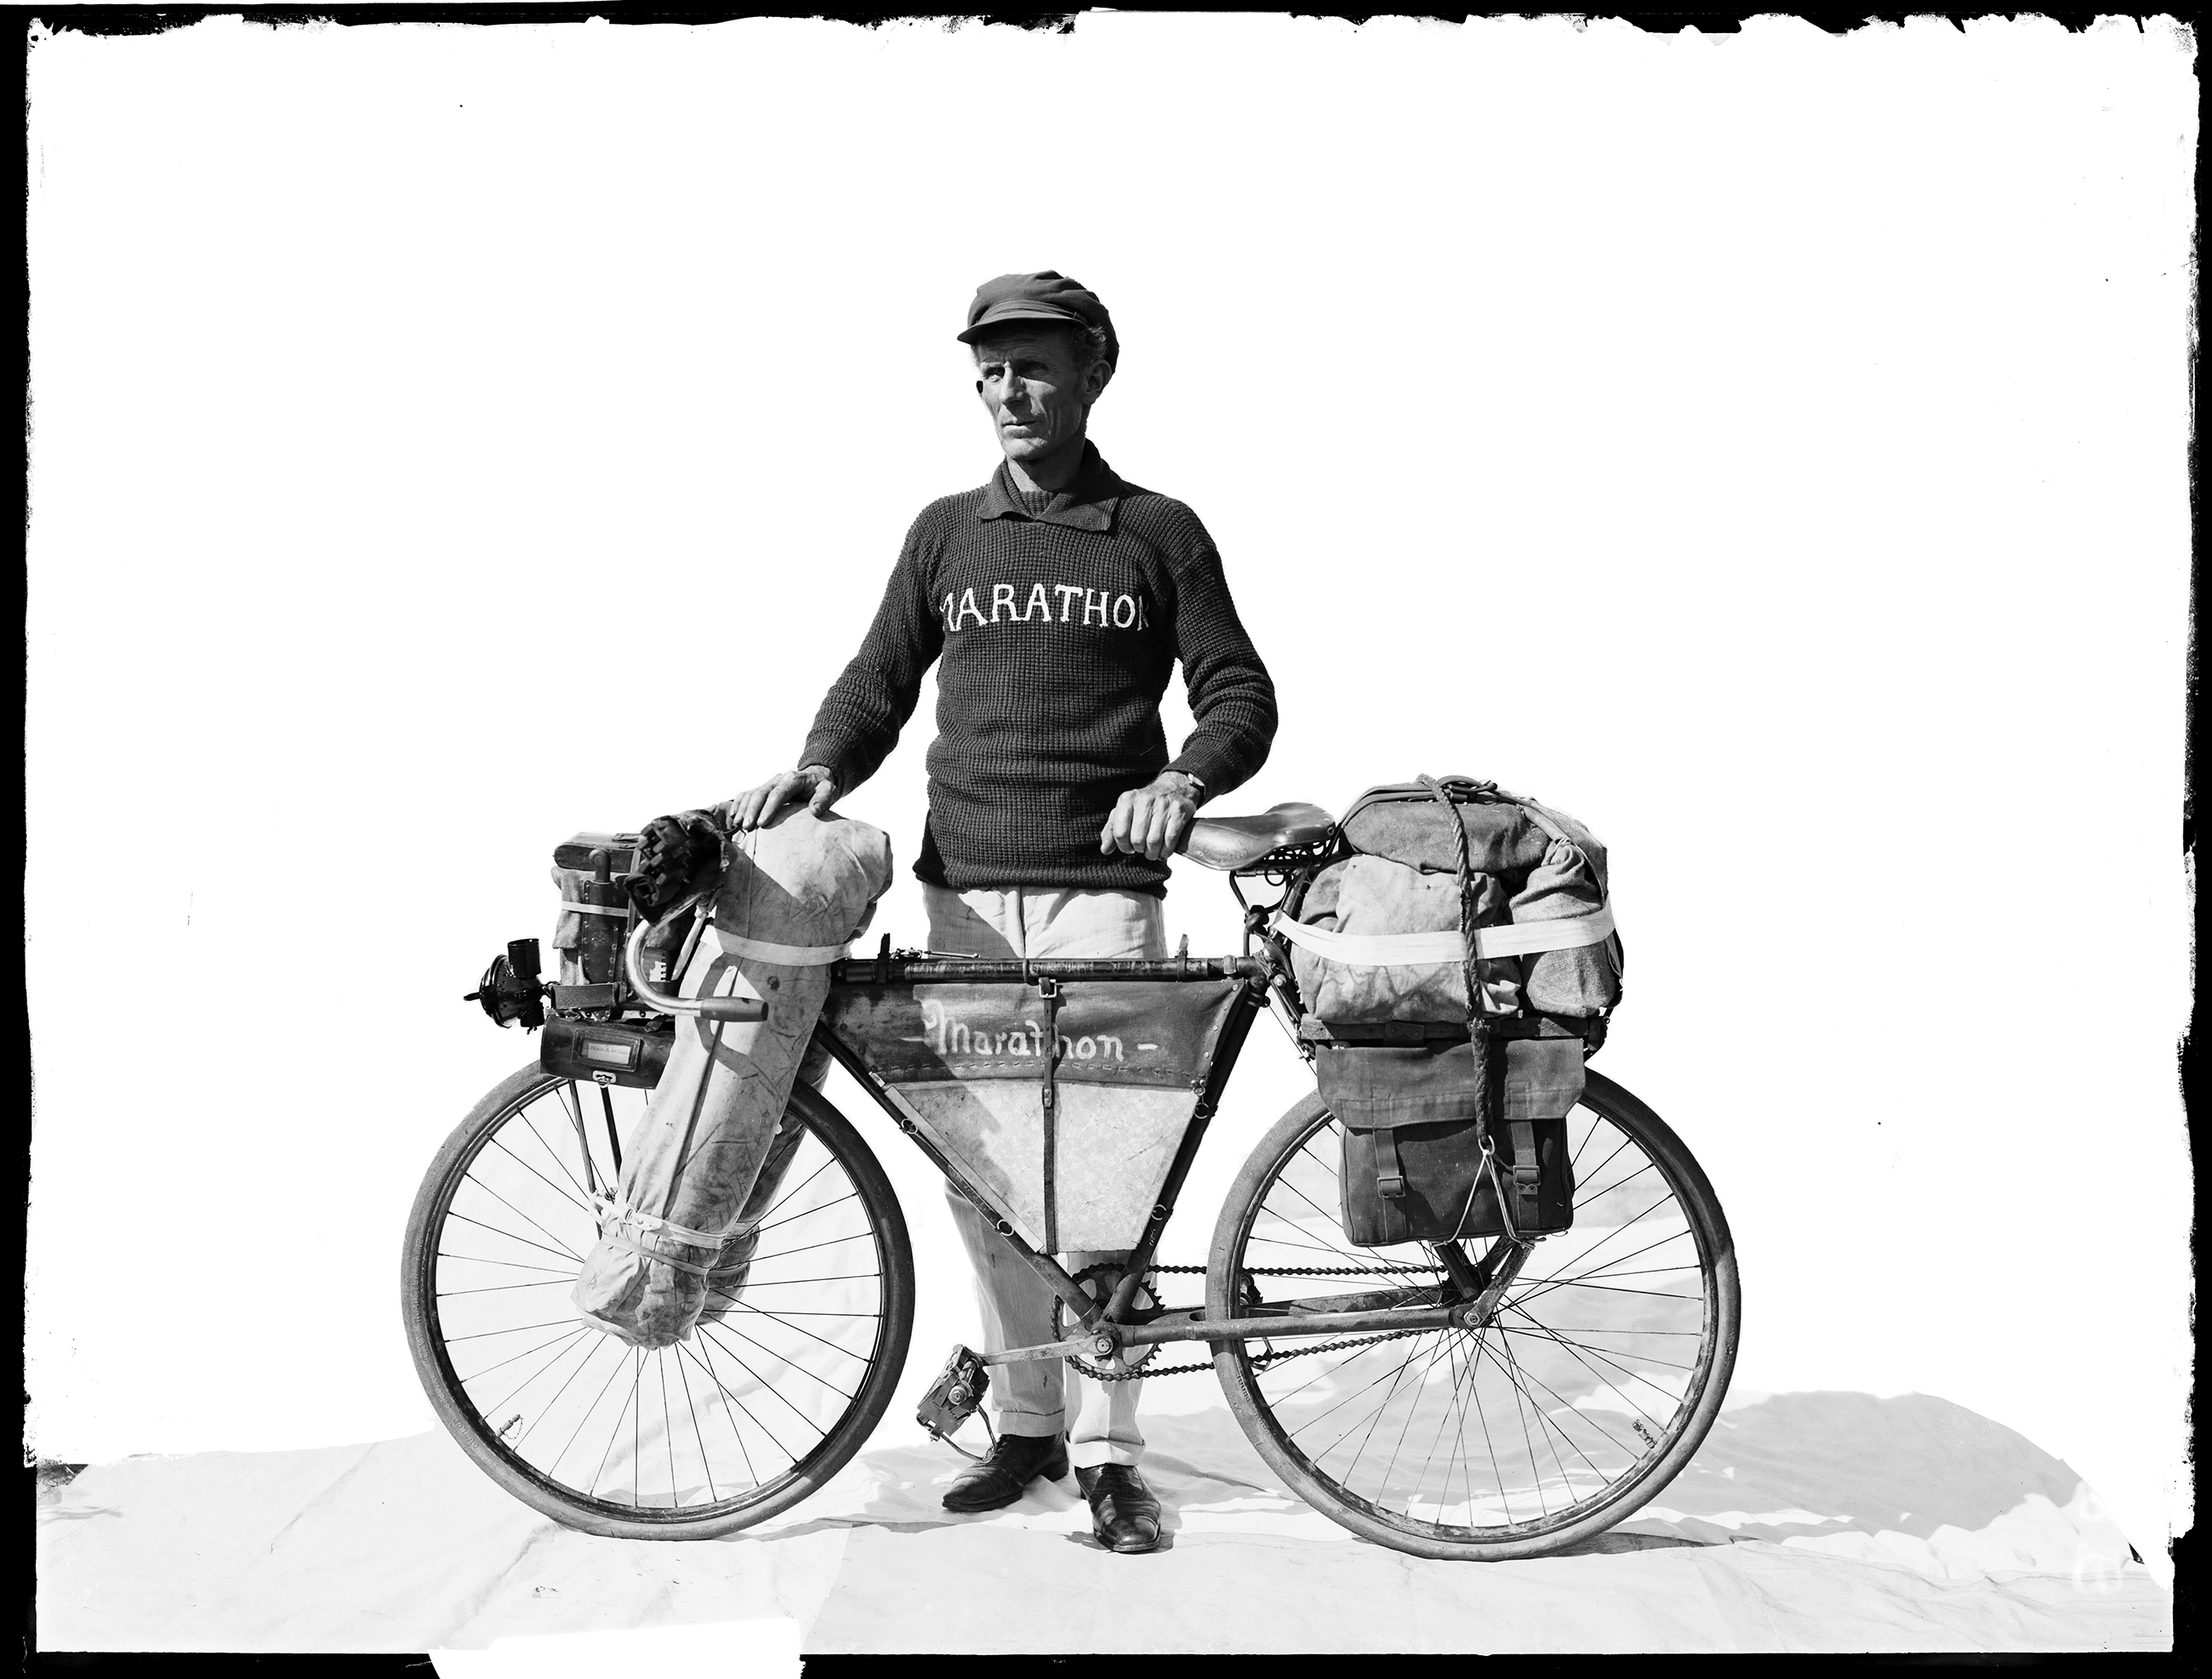 Francis Birtles, Australian adventurer, photographer, cyclist, and filmmaker, who set many long-distance cycling records, c. 1920, Arthur Ernest Foster